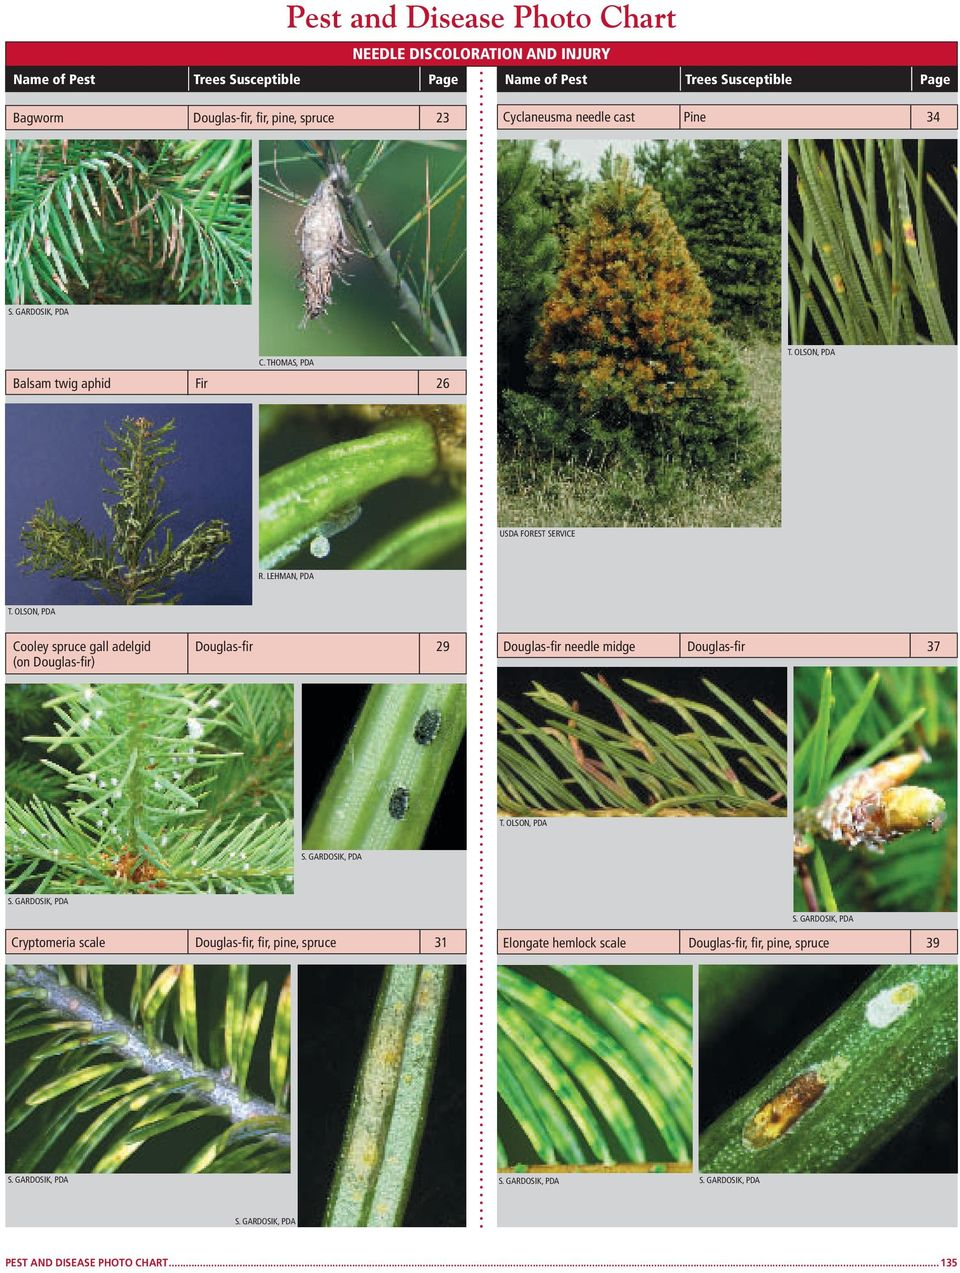 THOMAS, Balsam twig aphid Fir 26 USDA FOREST SERVICE Cooley spruce gall adelgid Douglas-fir 29 (on